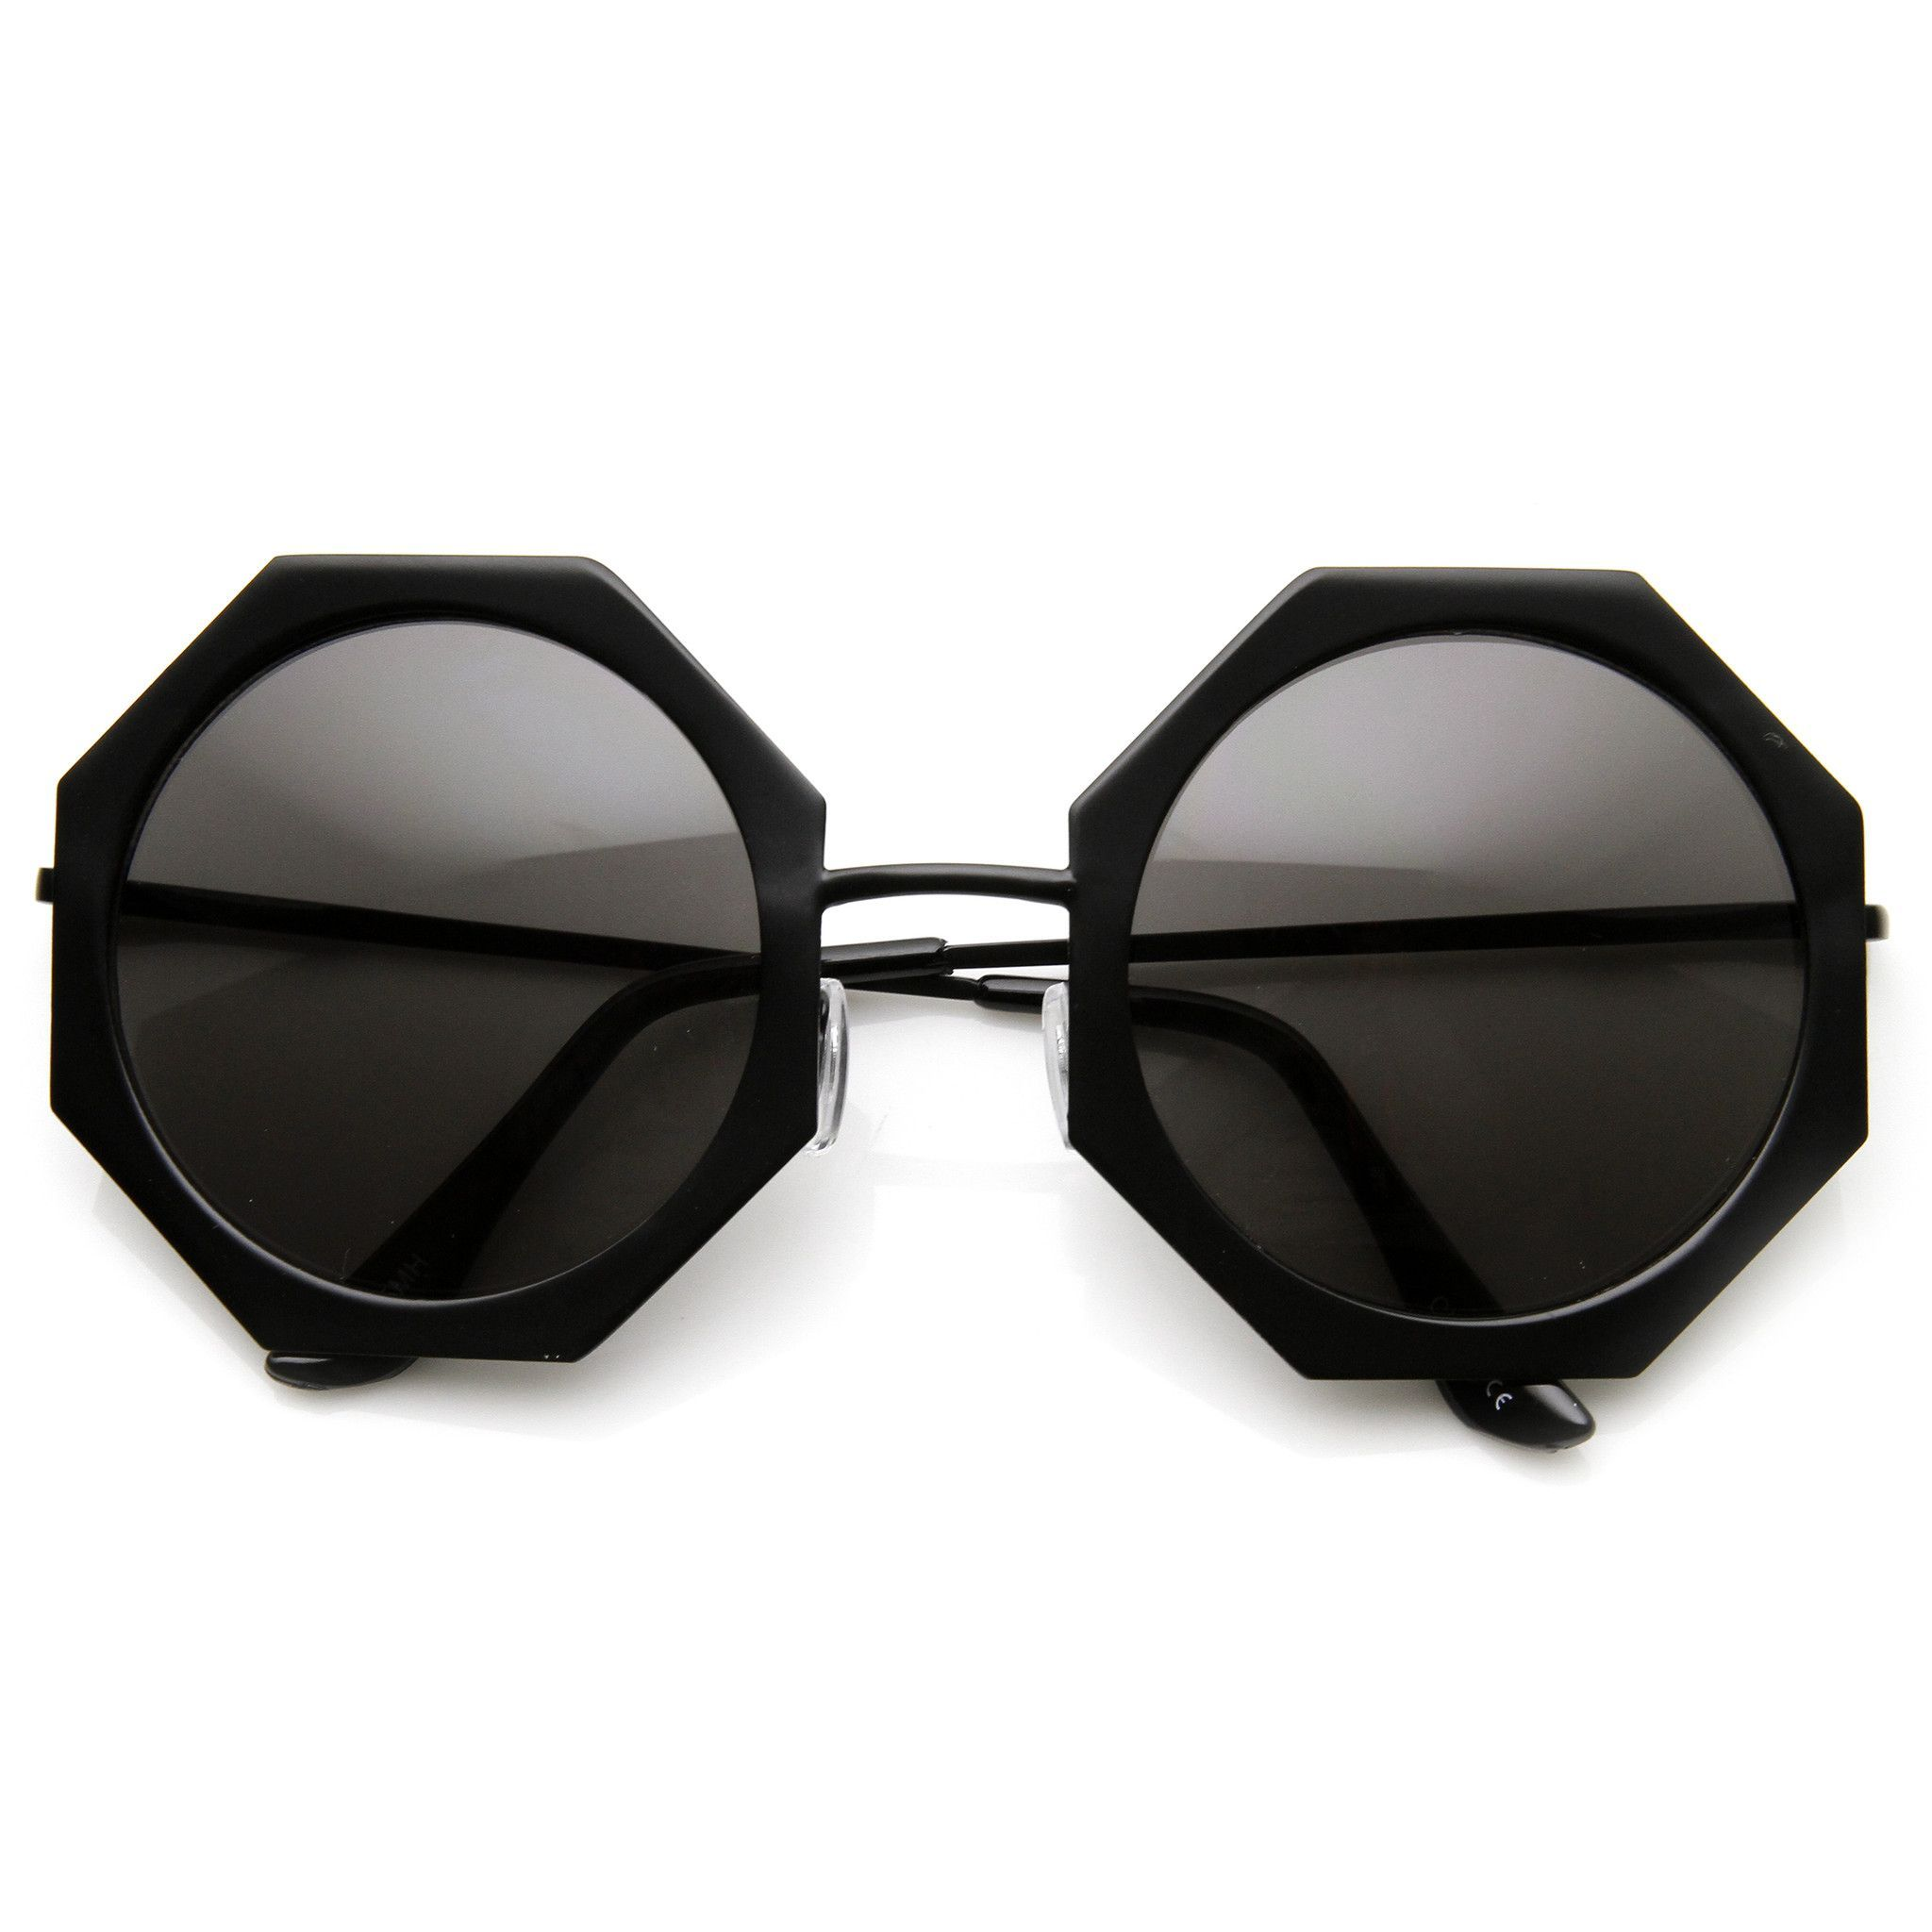 2687f679d065 Womens Oversize Metal Geometric Octagon Round Sunglasses 9316 ...